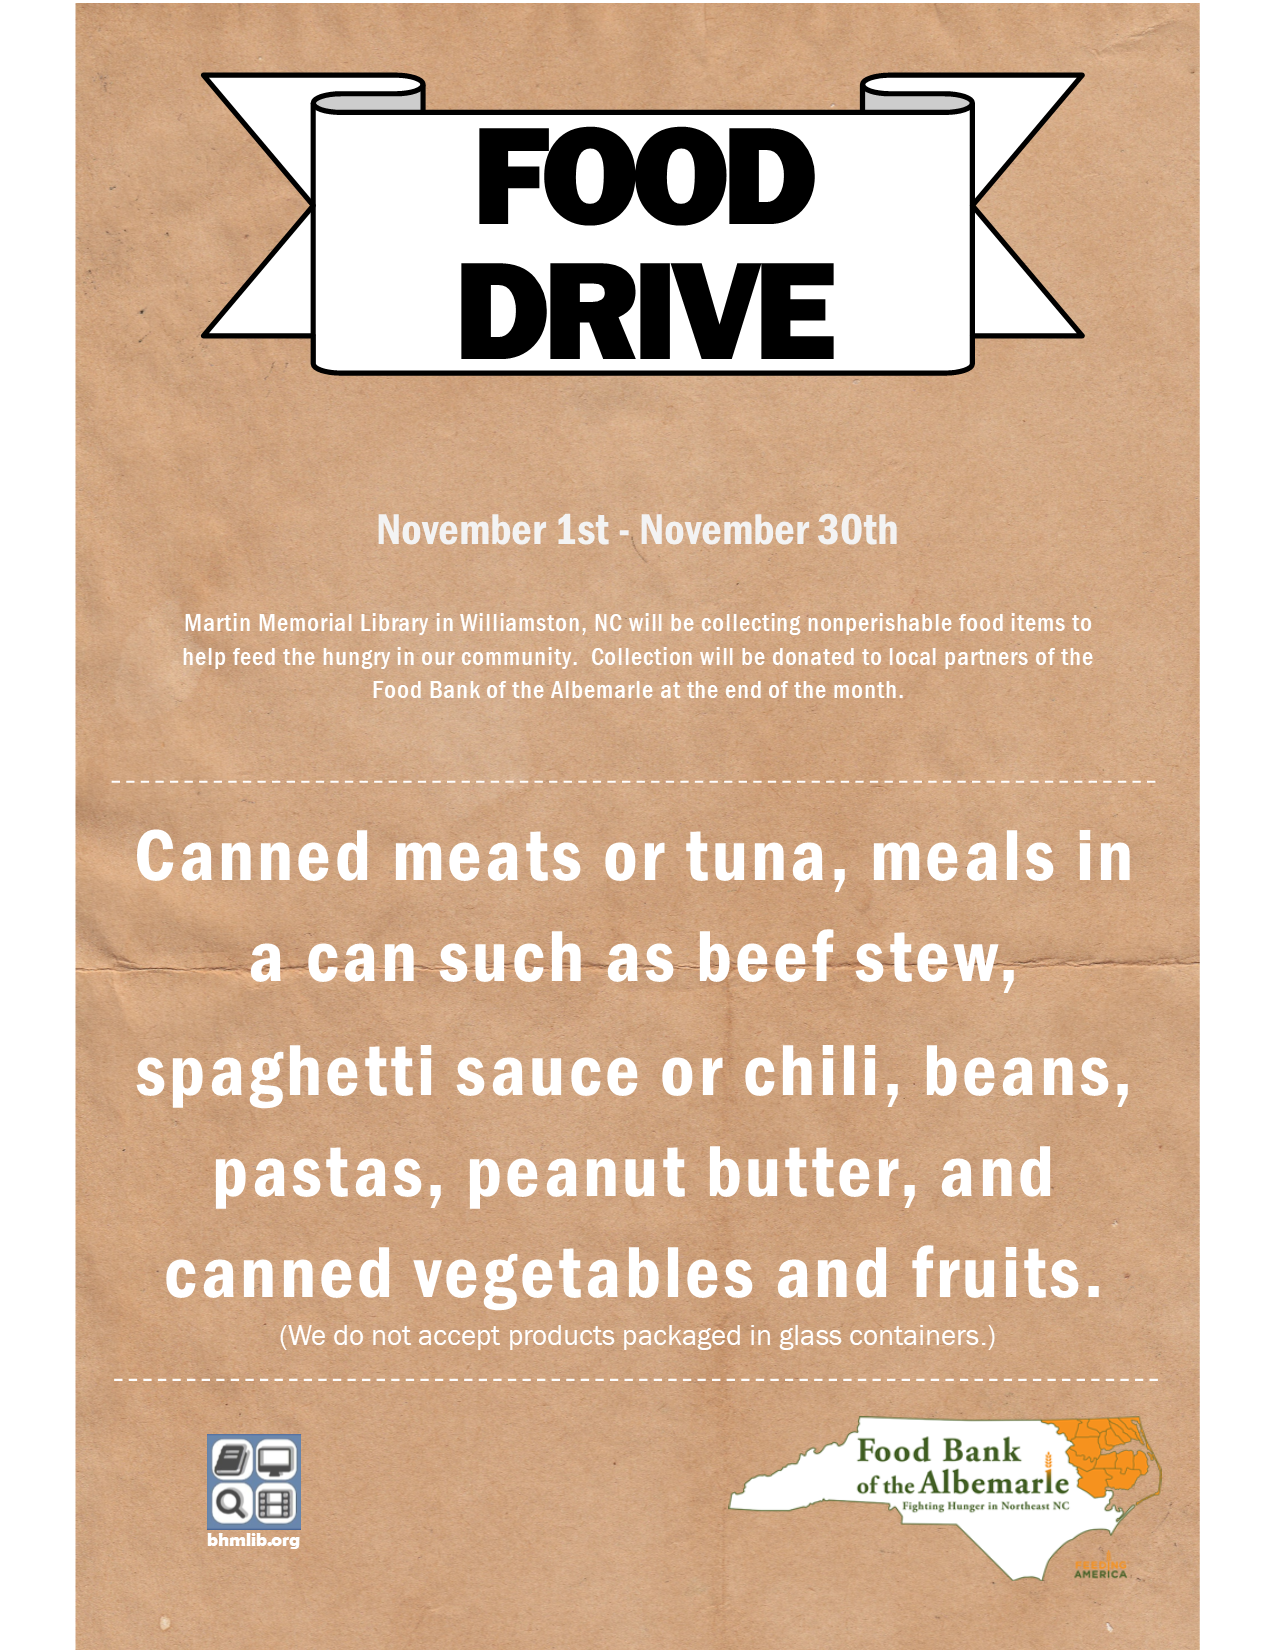 Food Drive at the Martin Memorial Library in Williamston